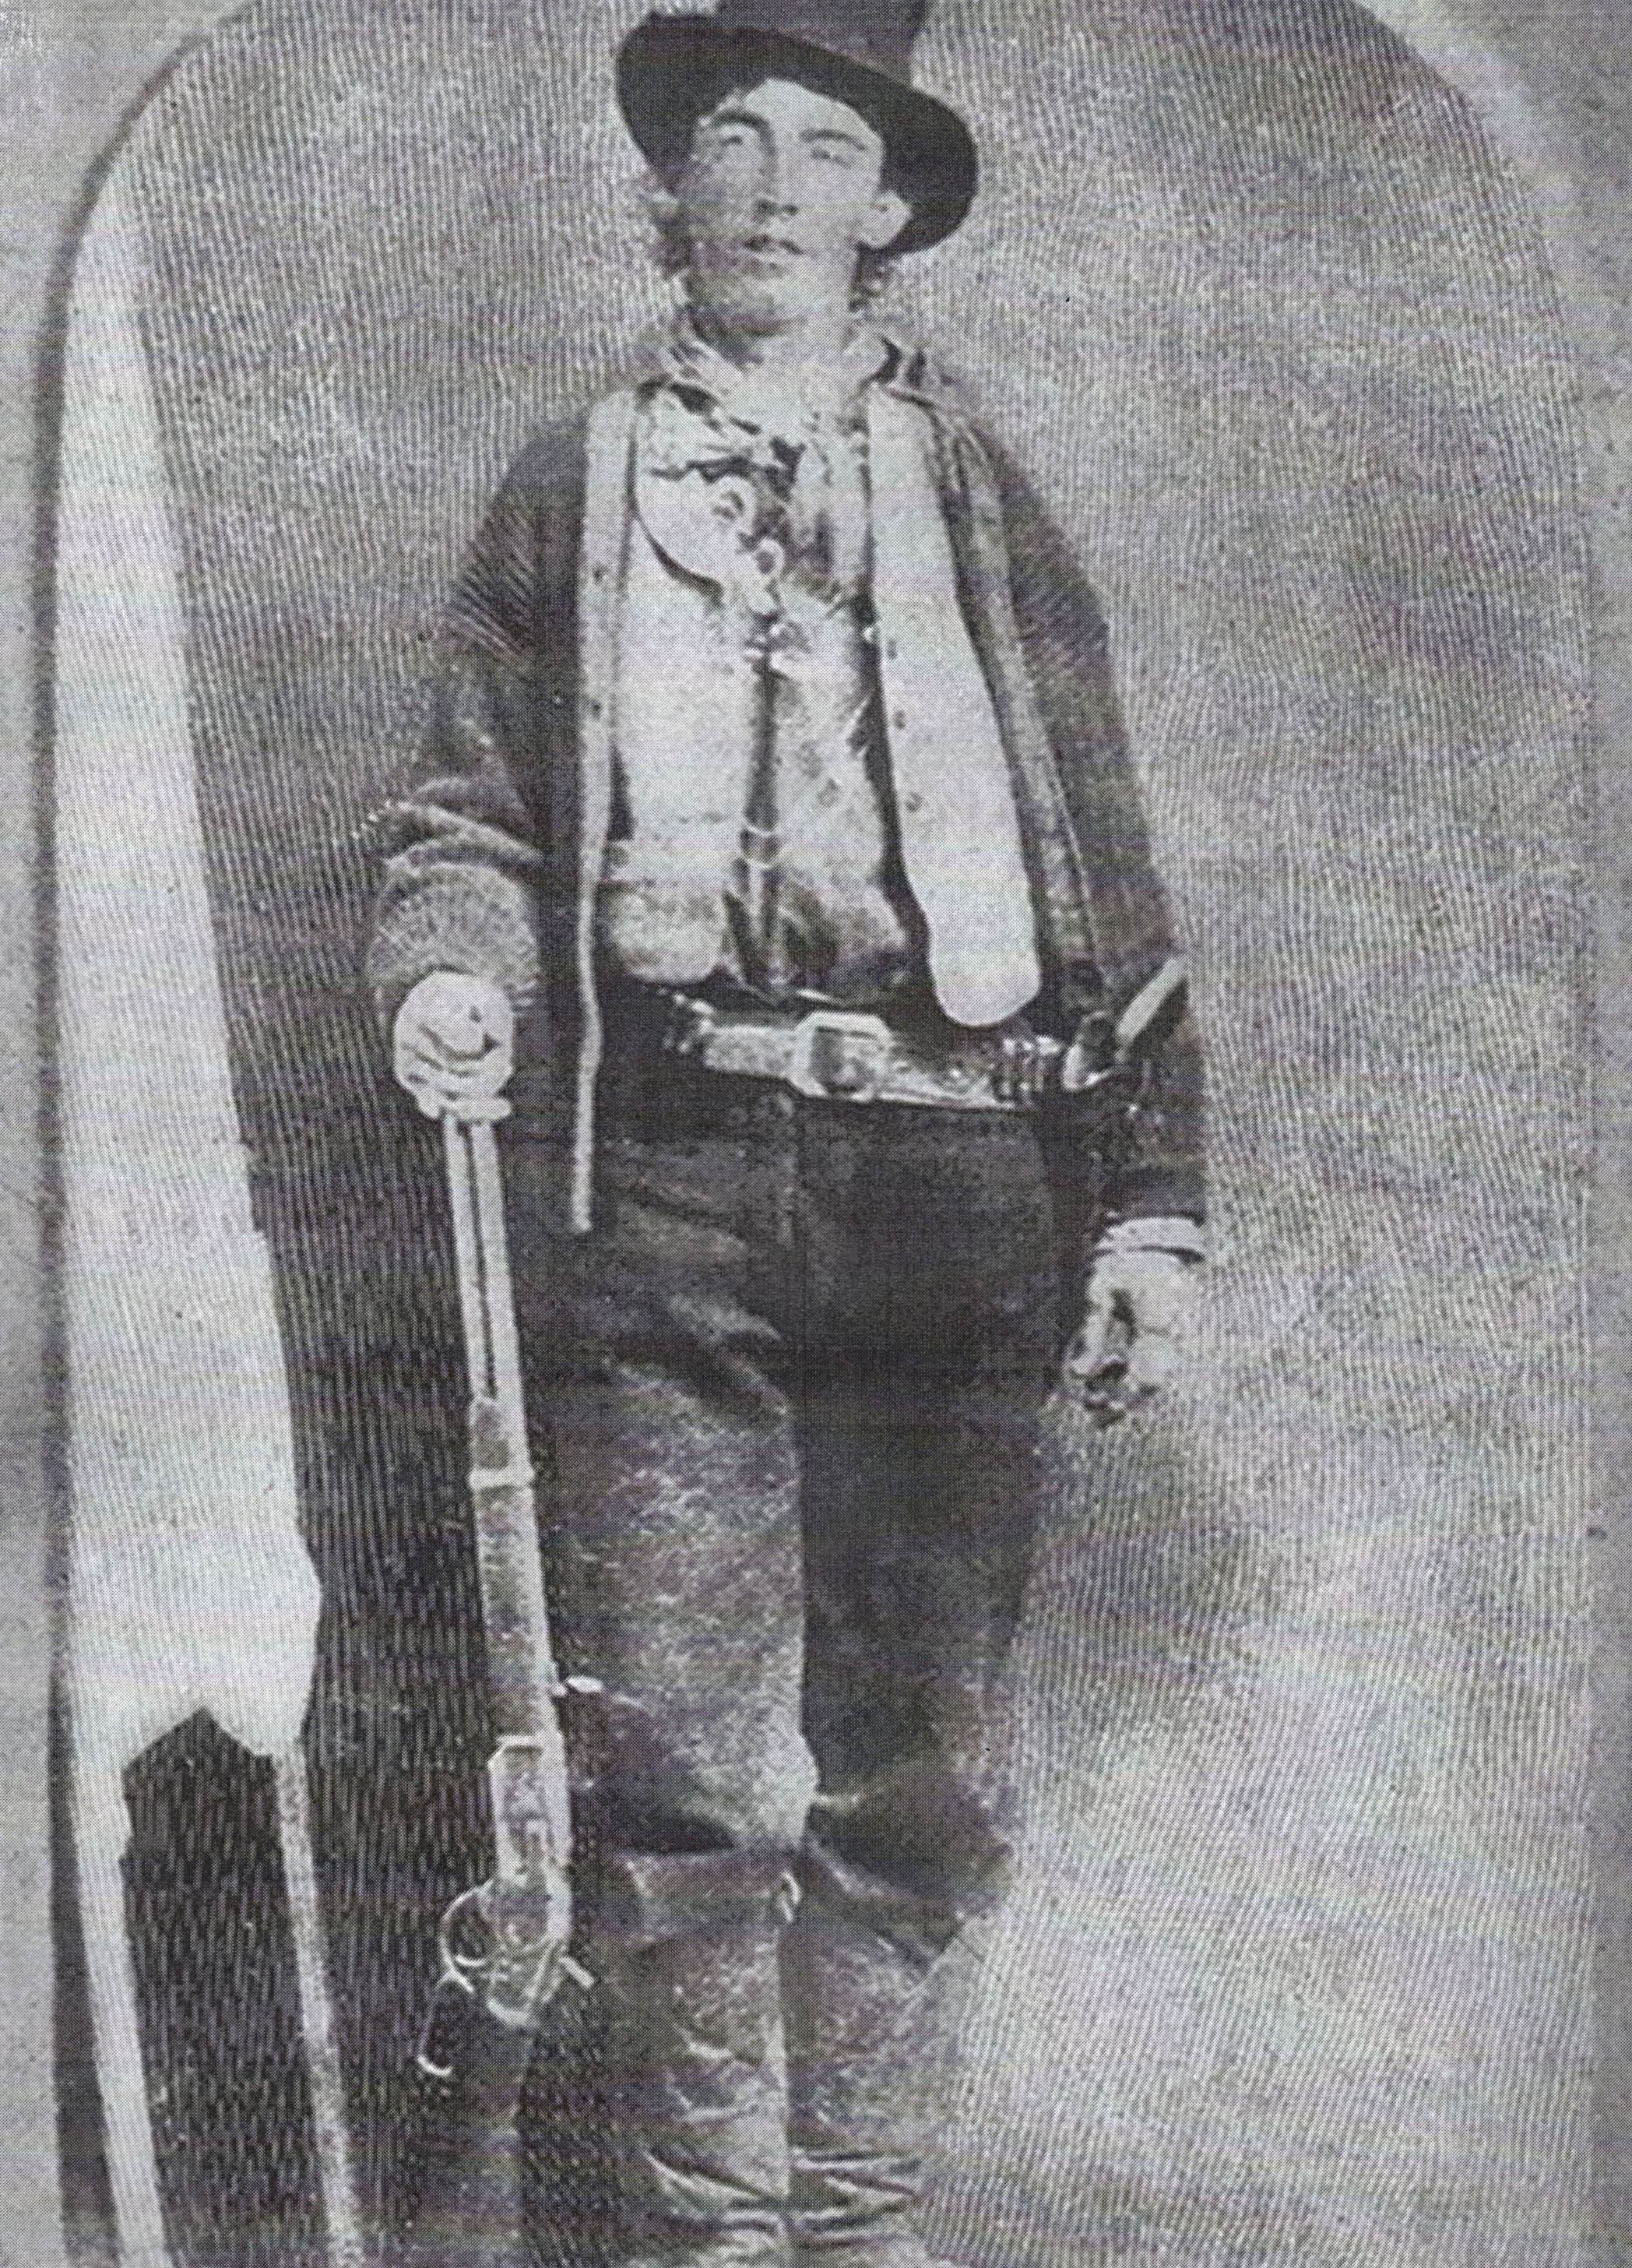 A vintage photograph of outlaw Billy the Kid